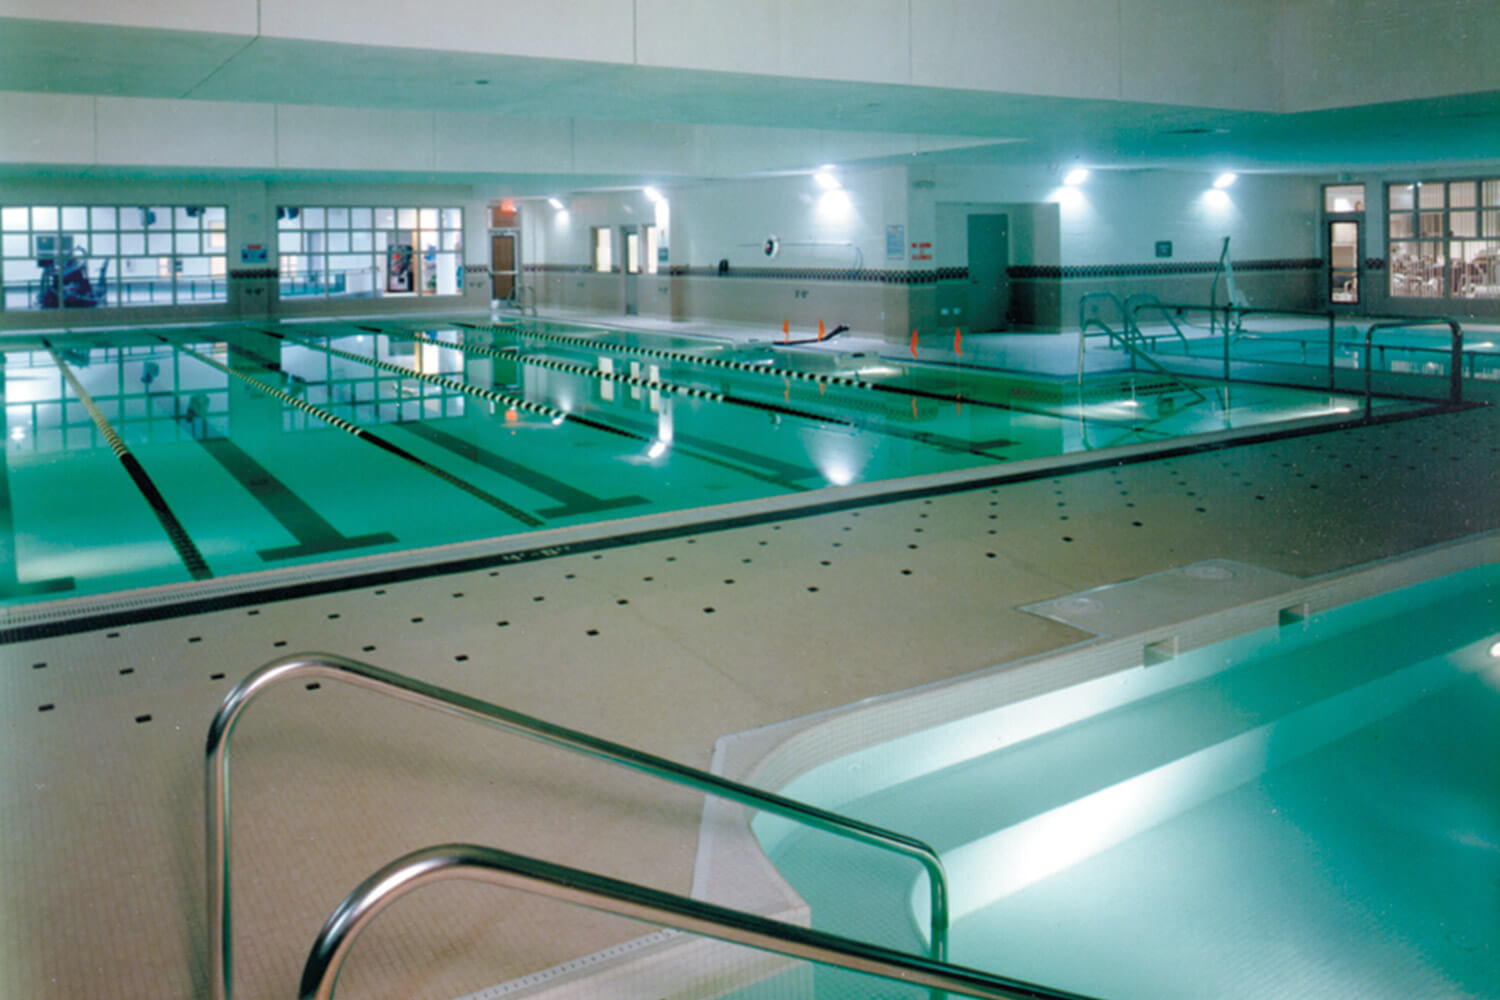 Edward Hospital Health and Fitness Center pools